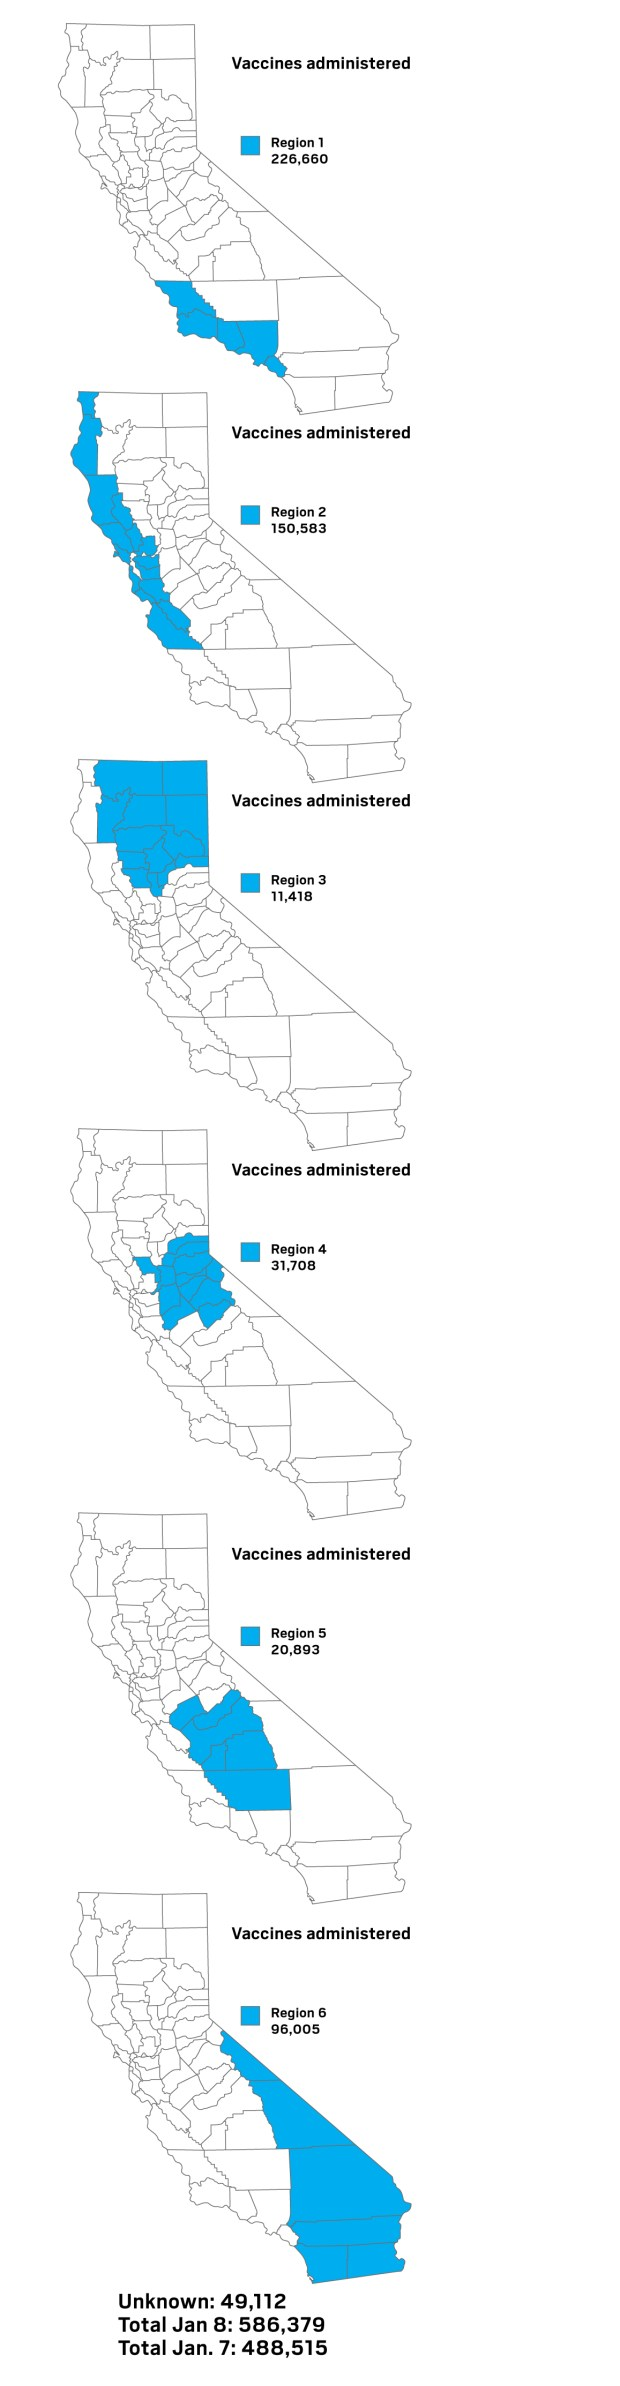 Coronavirus: Totals of vaccinations administered in California's six regions as of Jan. 8